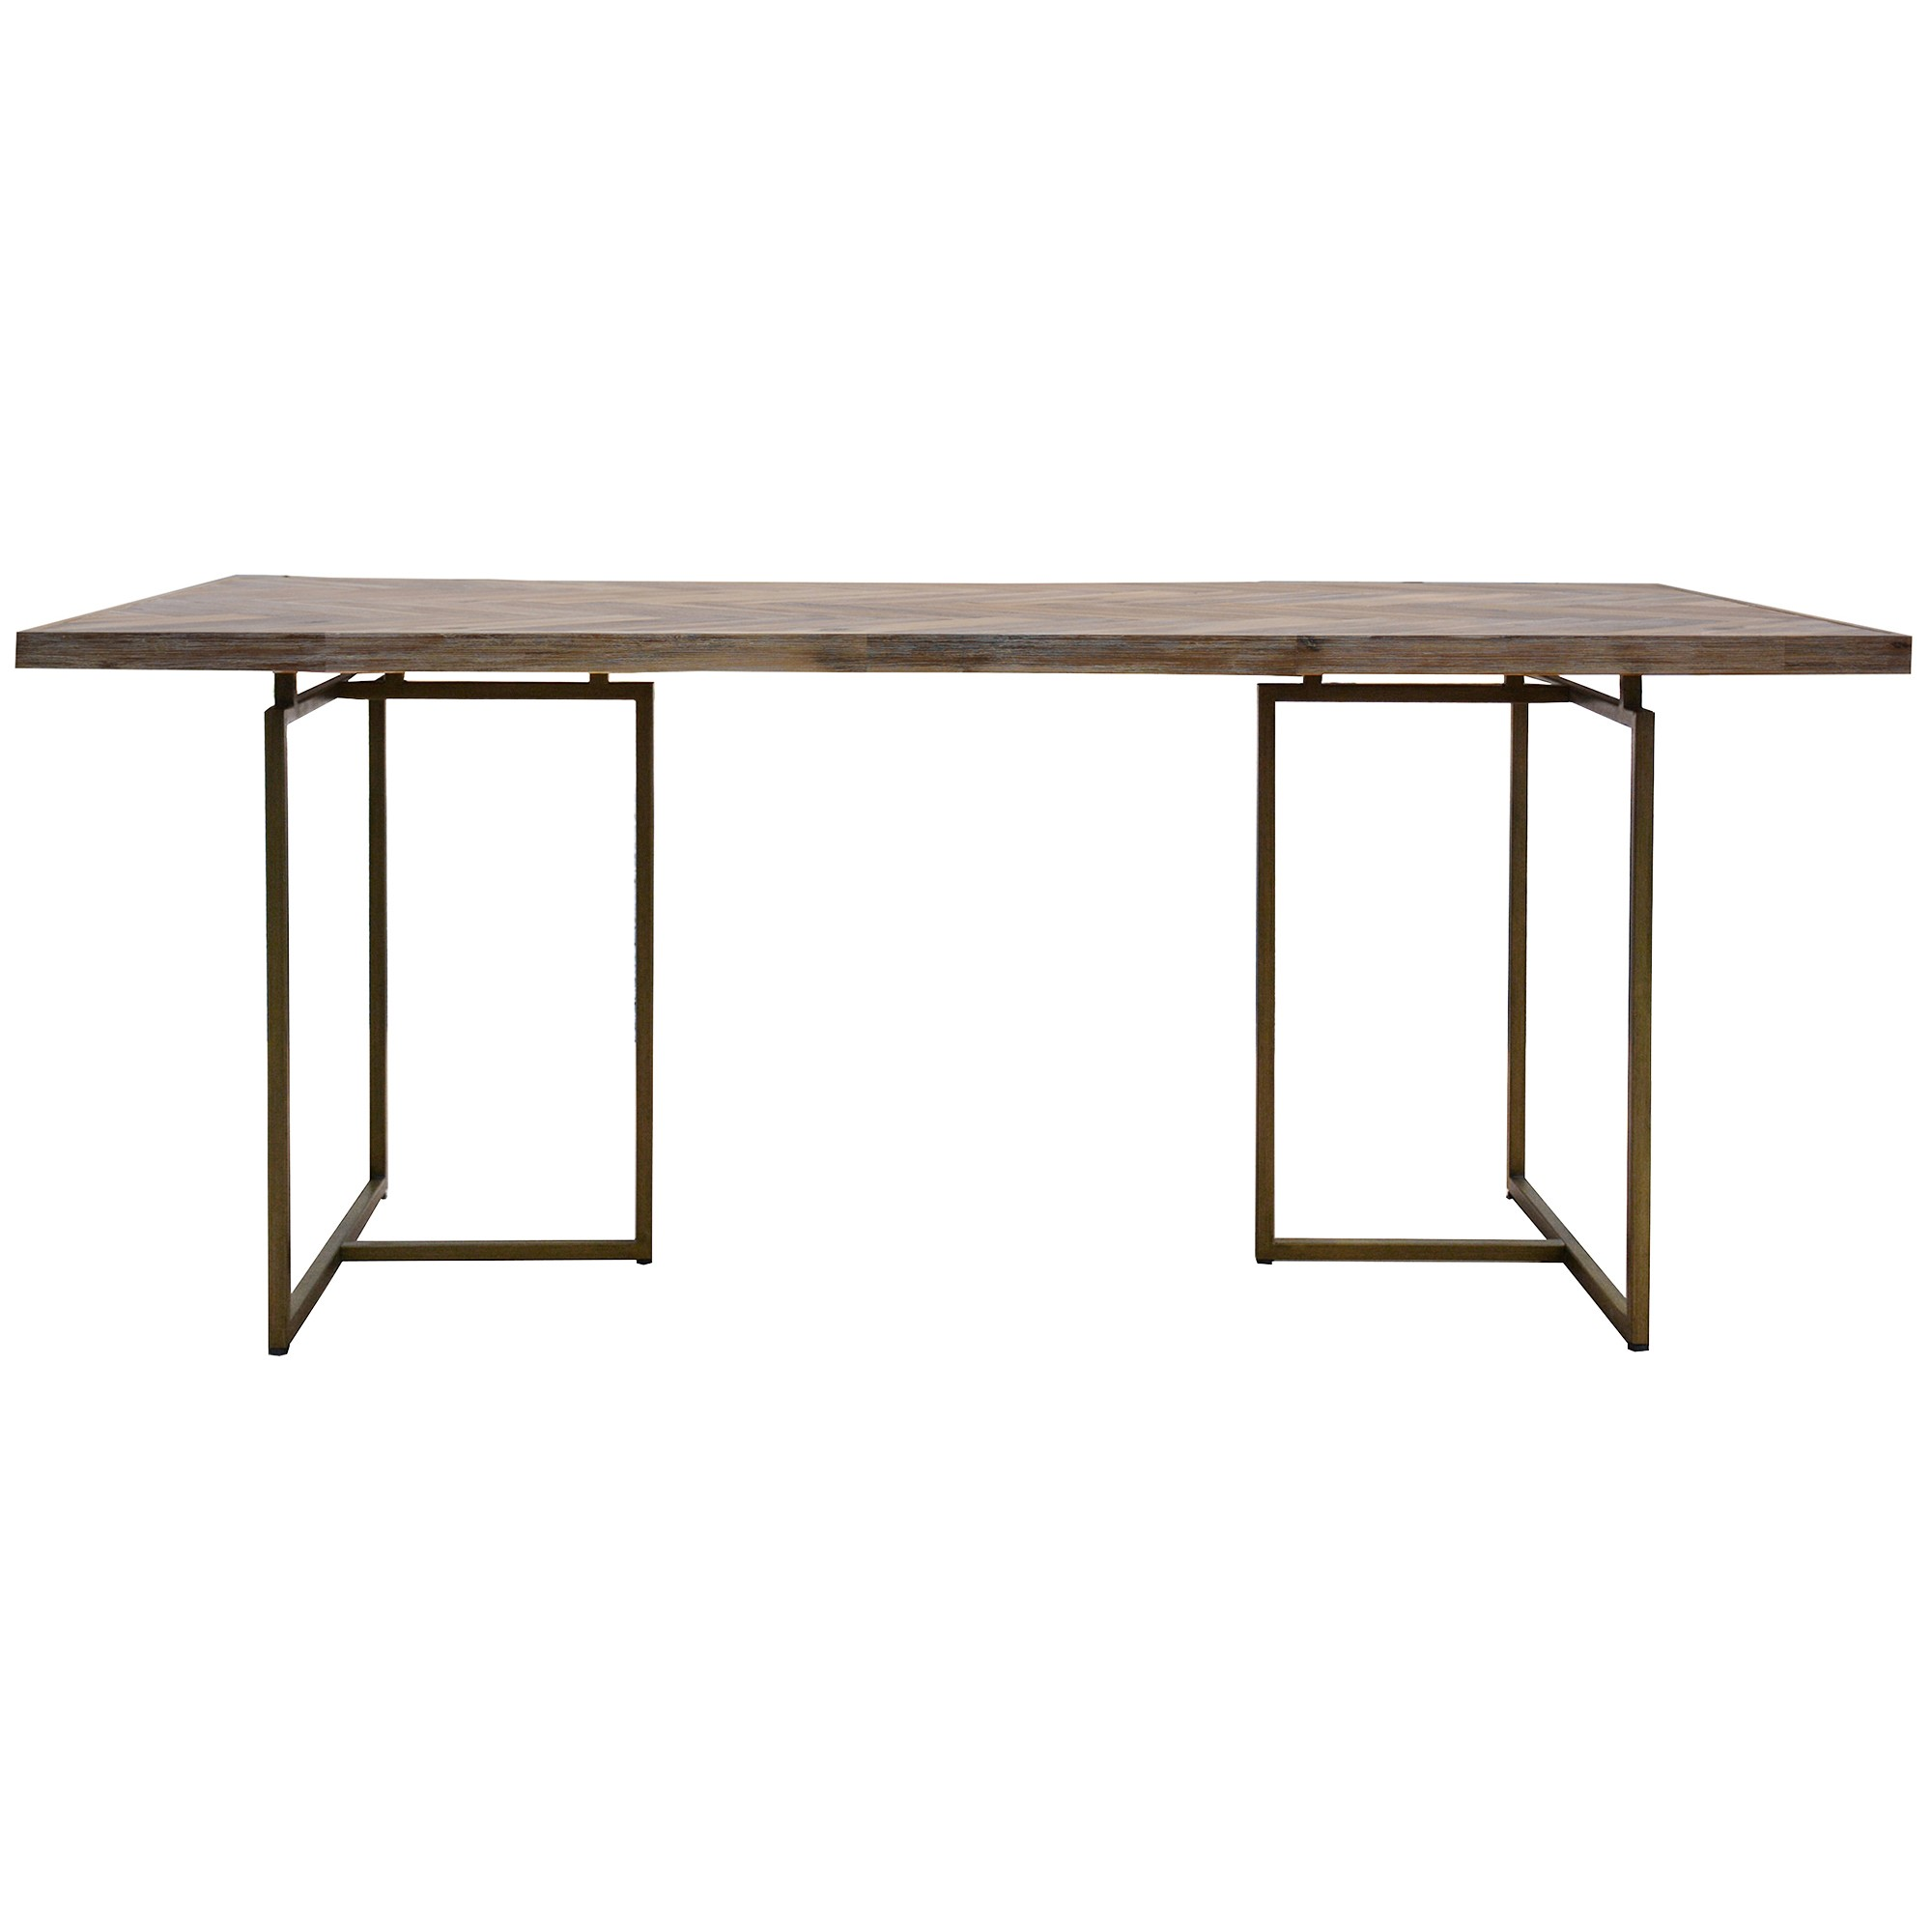 Nona Acacia Timber & Metal Dining Table, 210cm